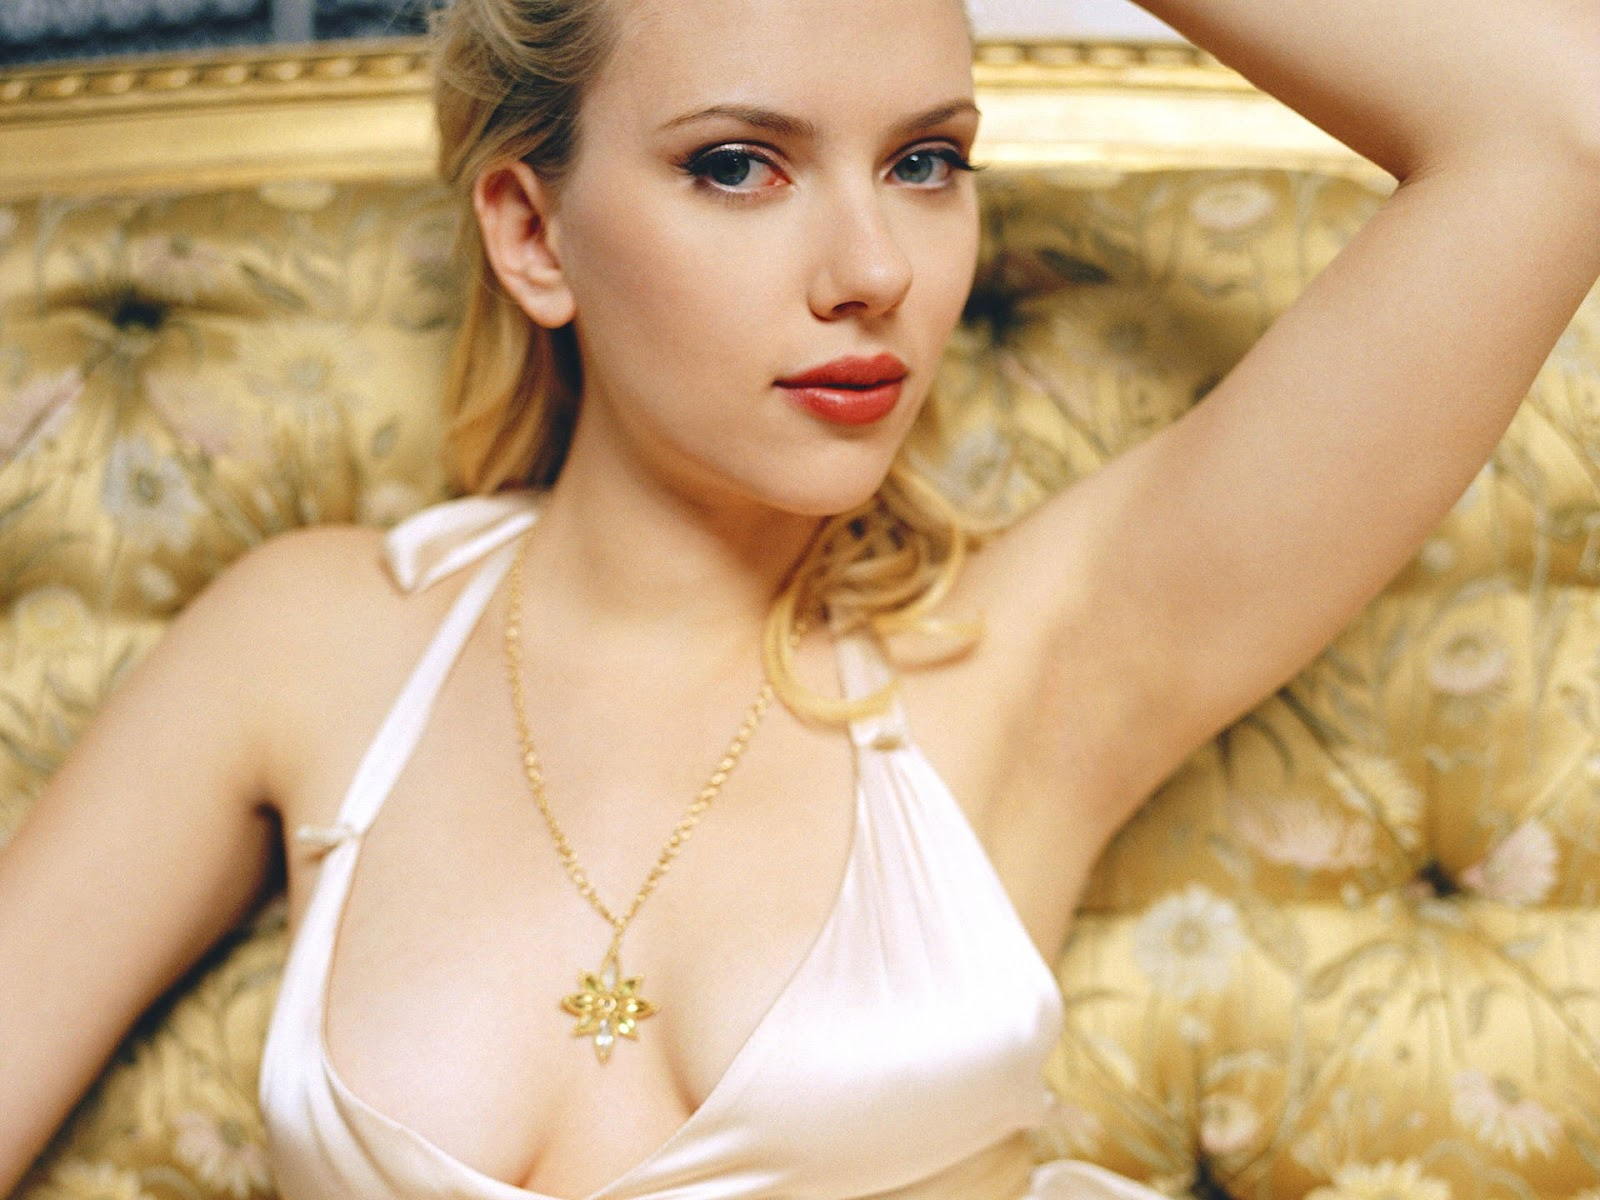 Scarlett Johansson Low Neck Dress